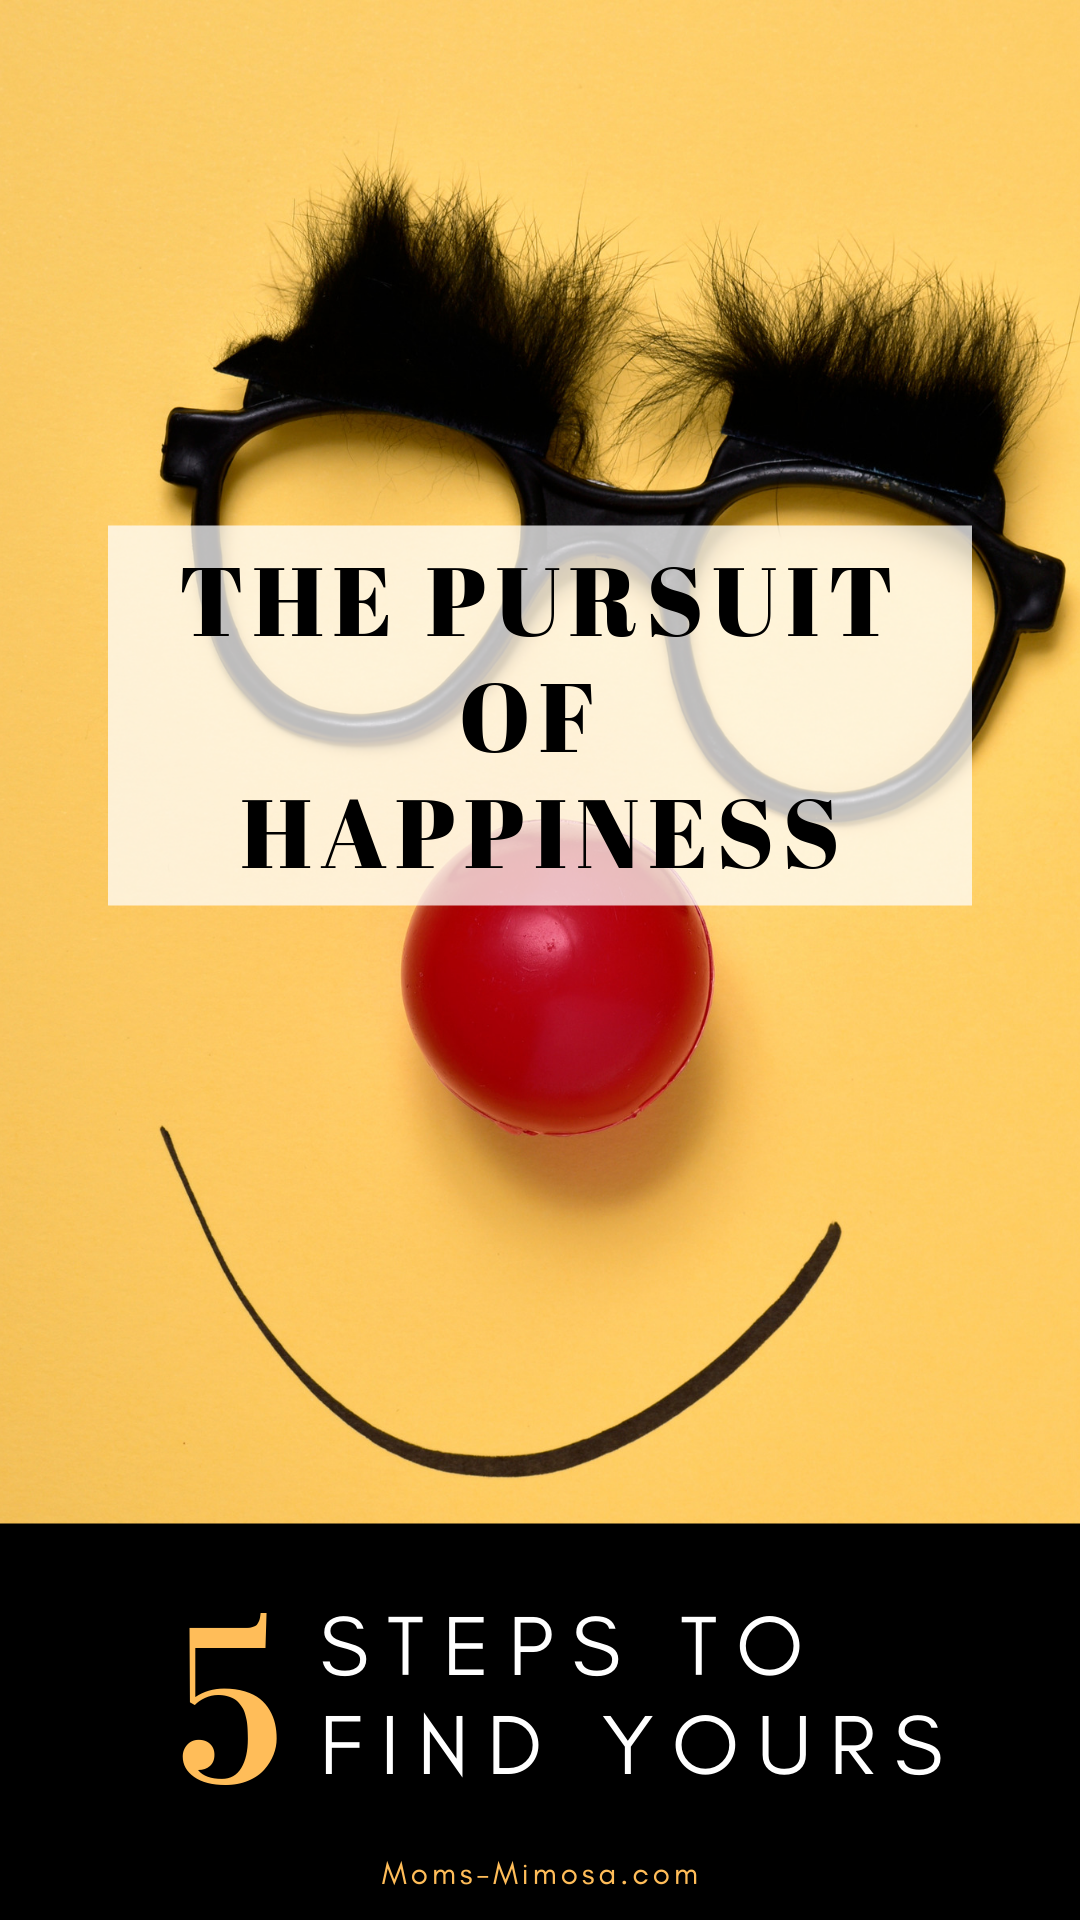 The Pursuit Of Happiness 5 Steps To Find Yours